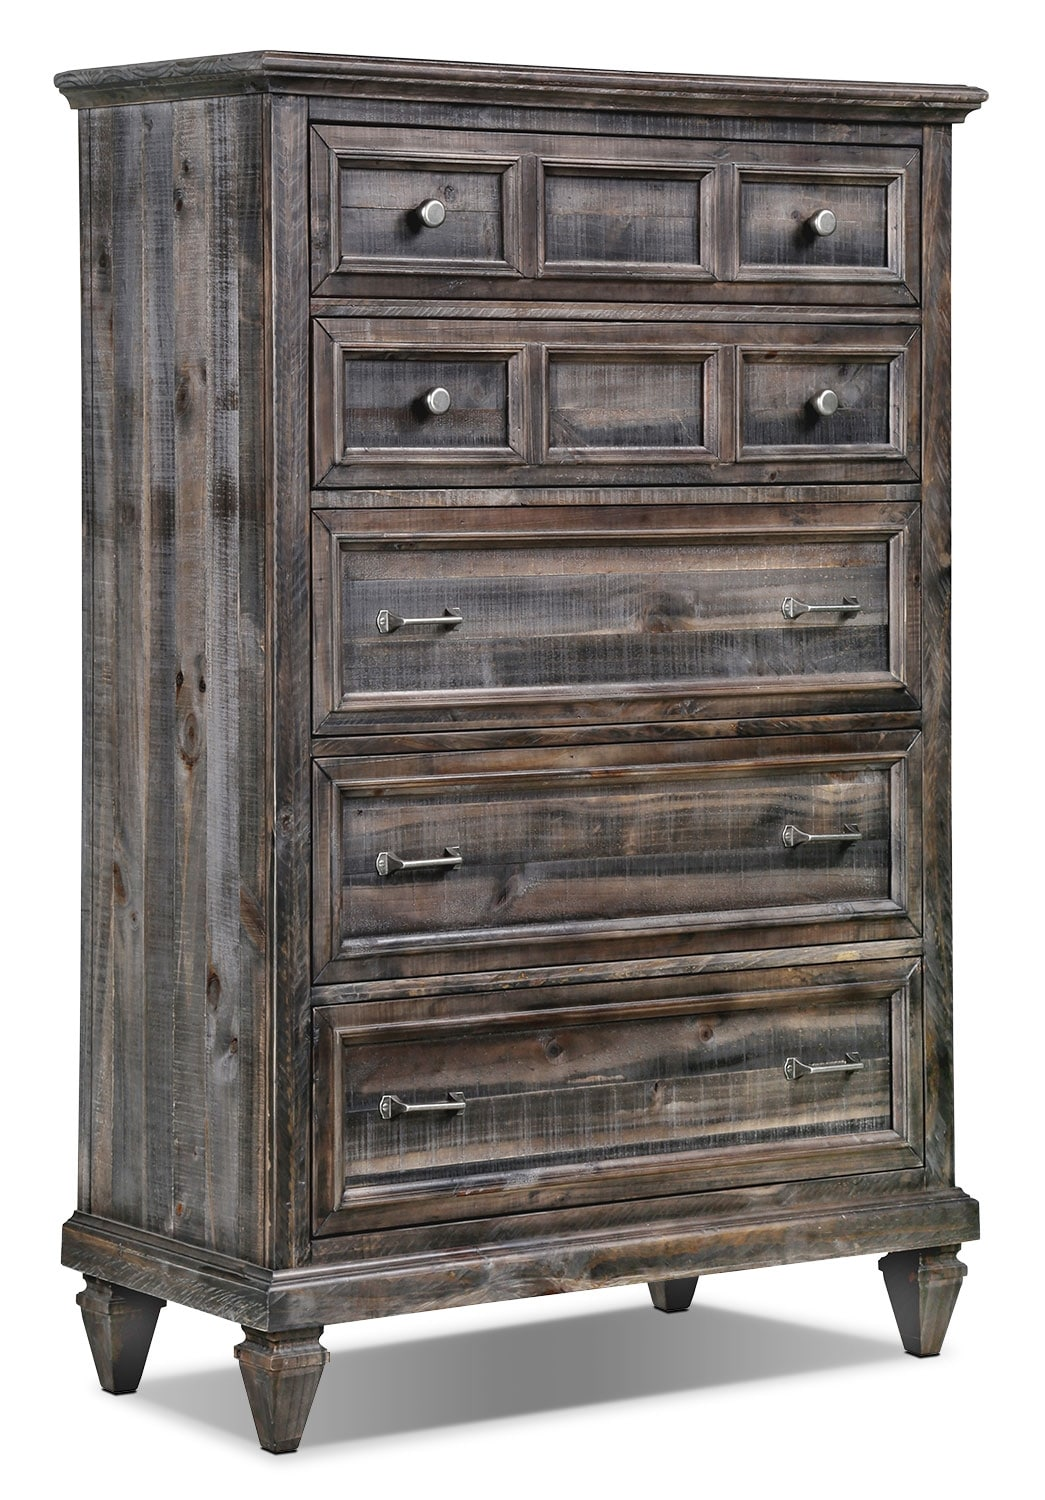 Bedroom Furniture - Calistoga Chest - Weathered Charcoal